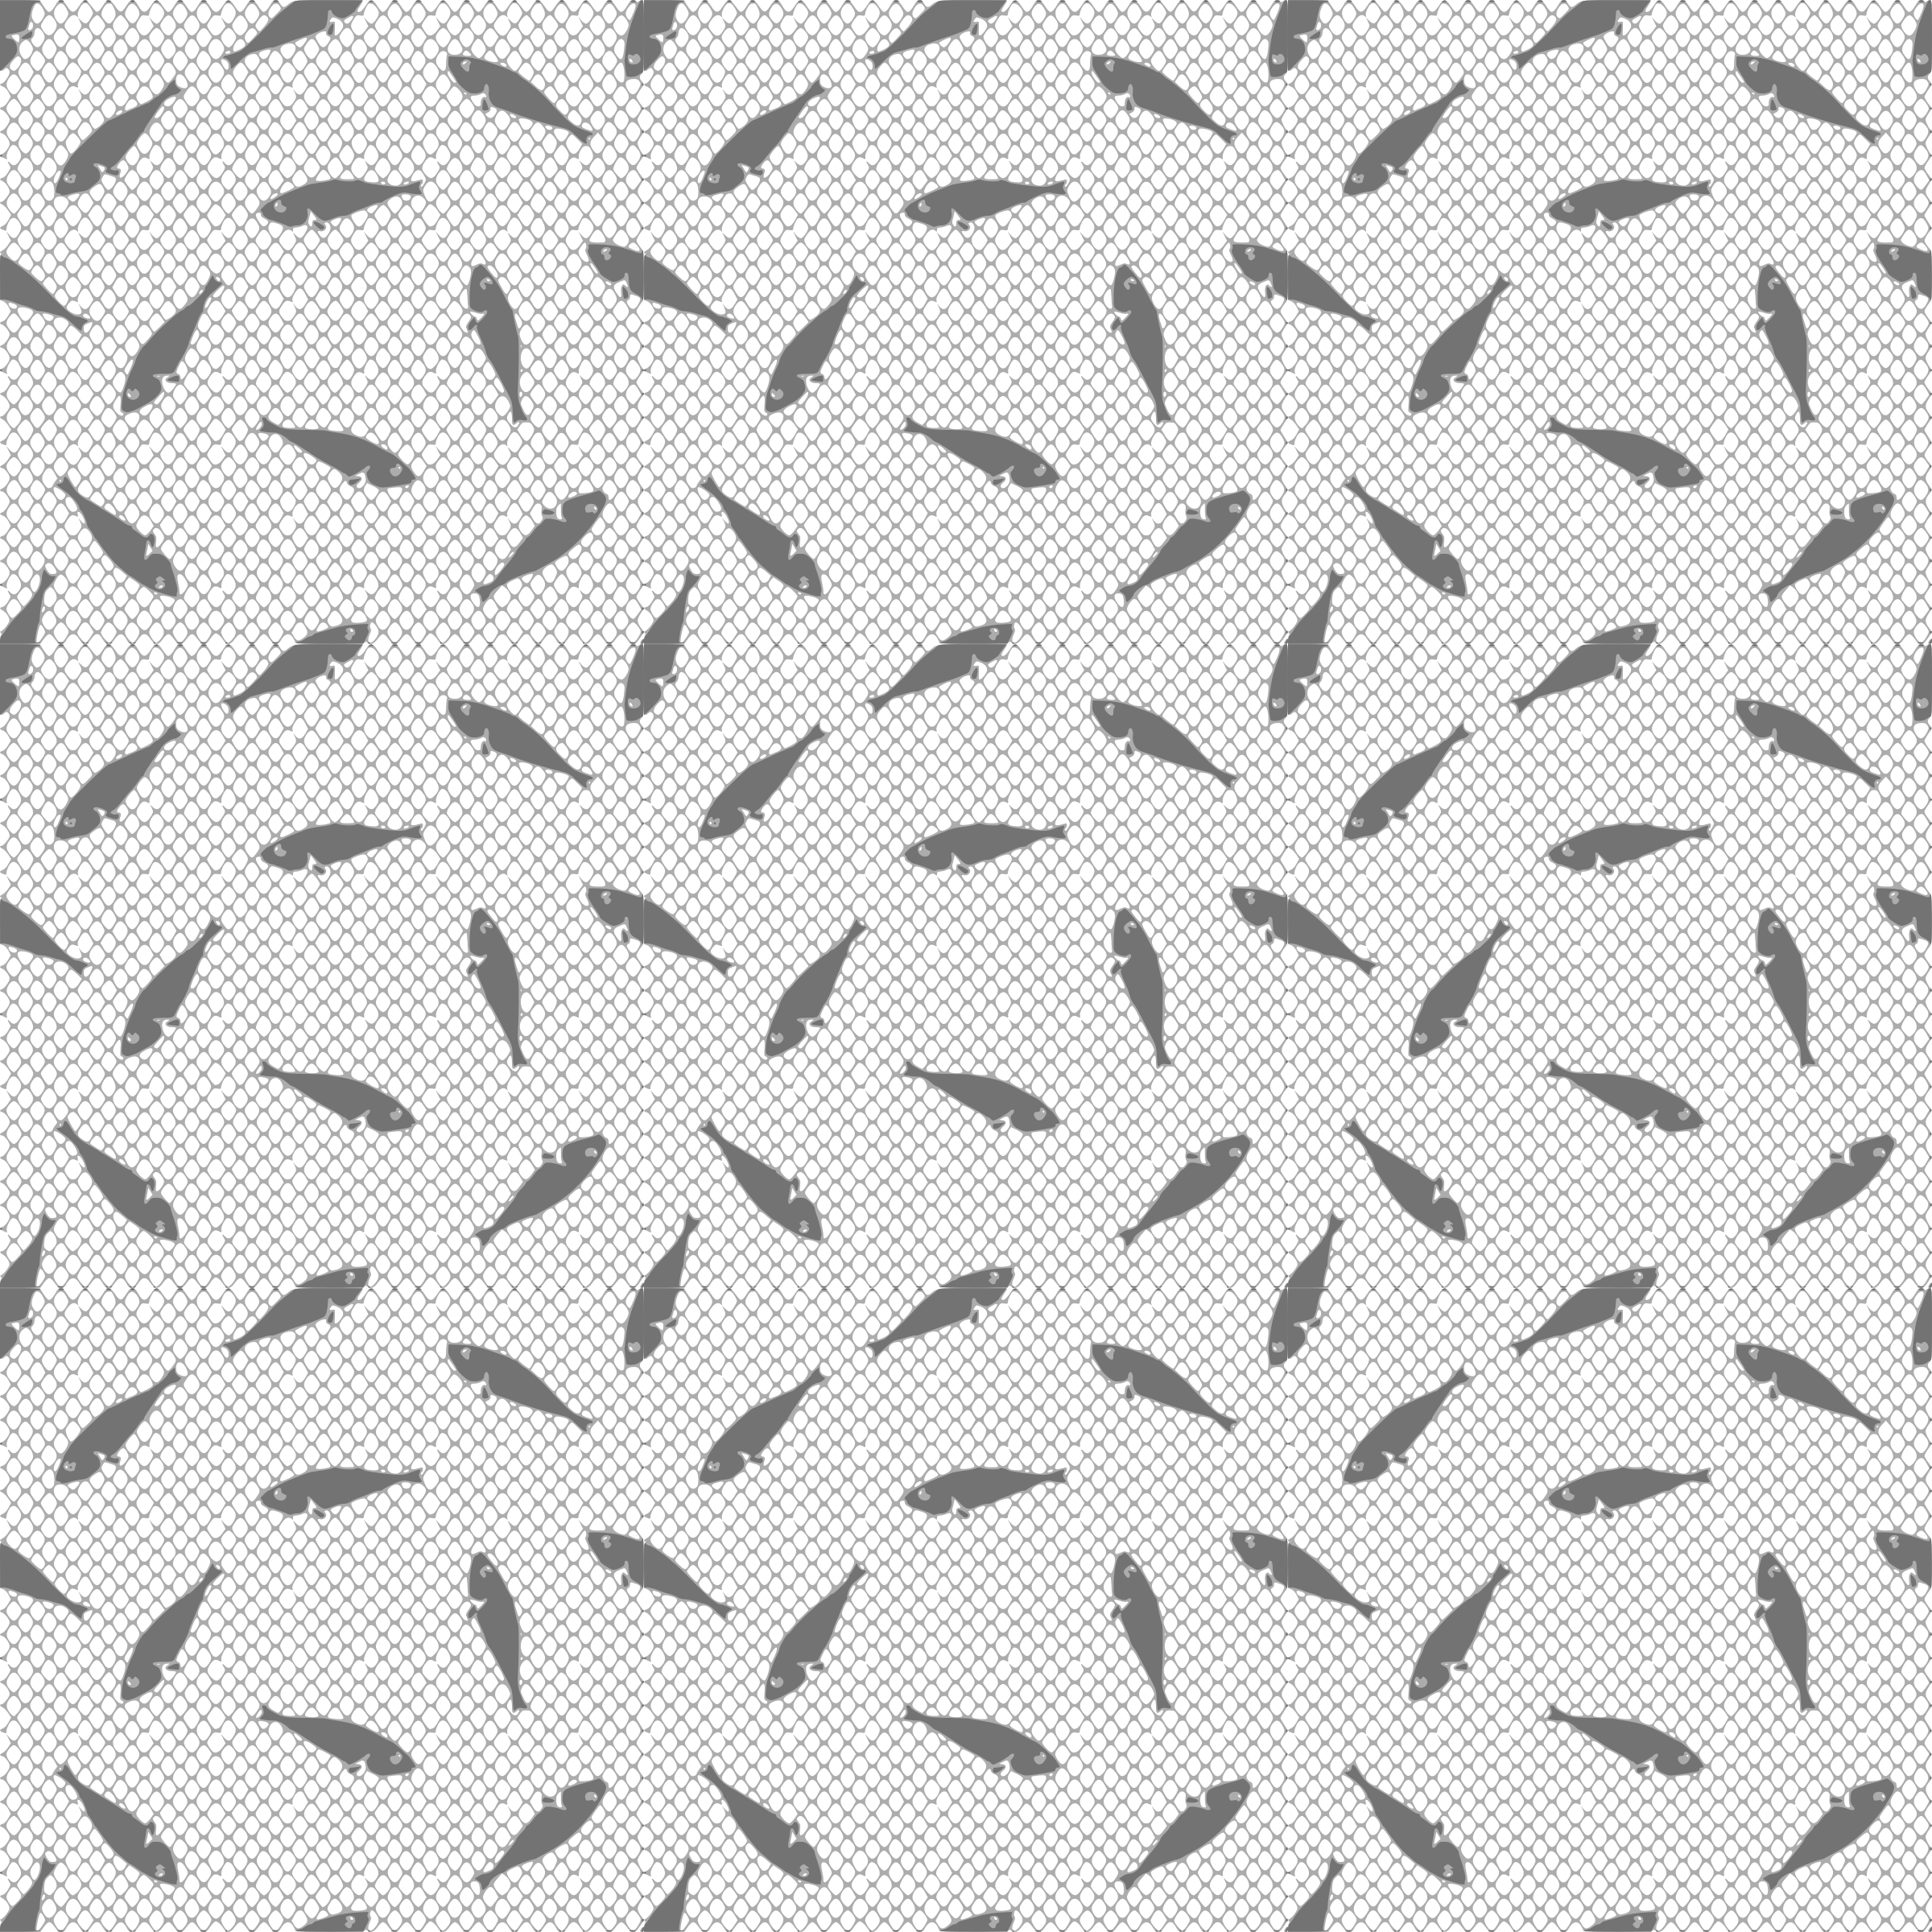 Fish net clipart image black and white download Clipart - fishnet 01 image black and white download